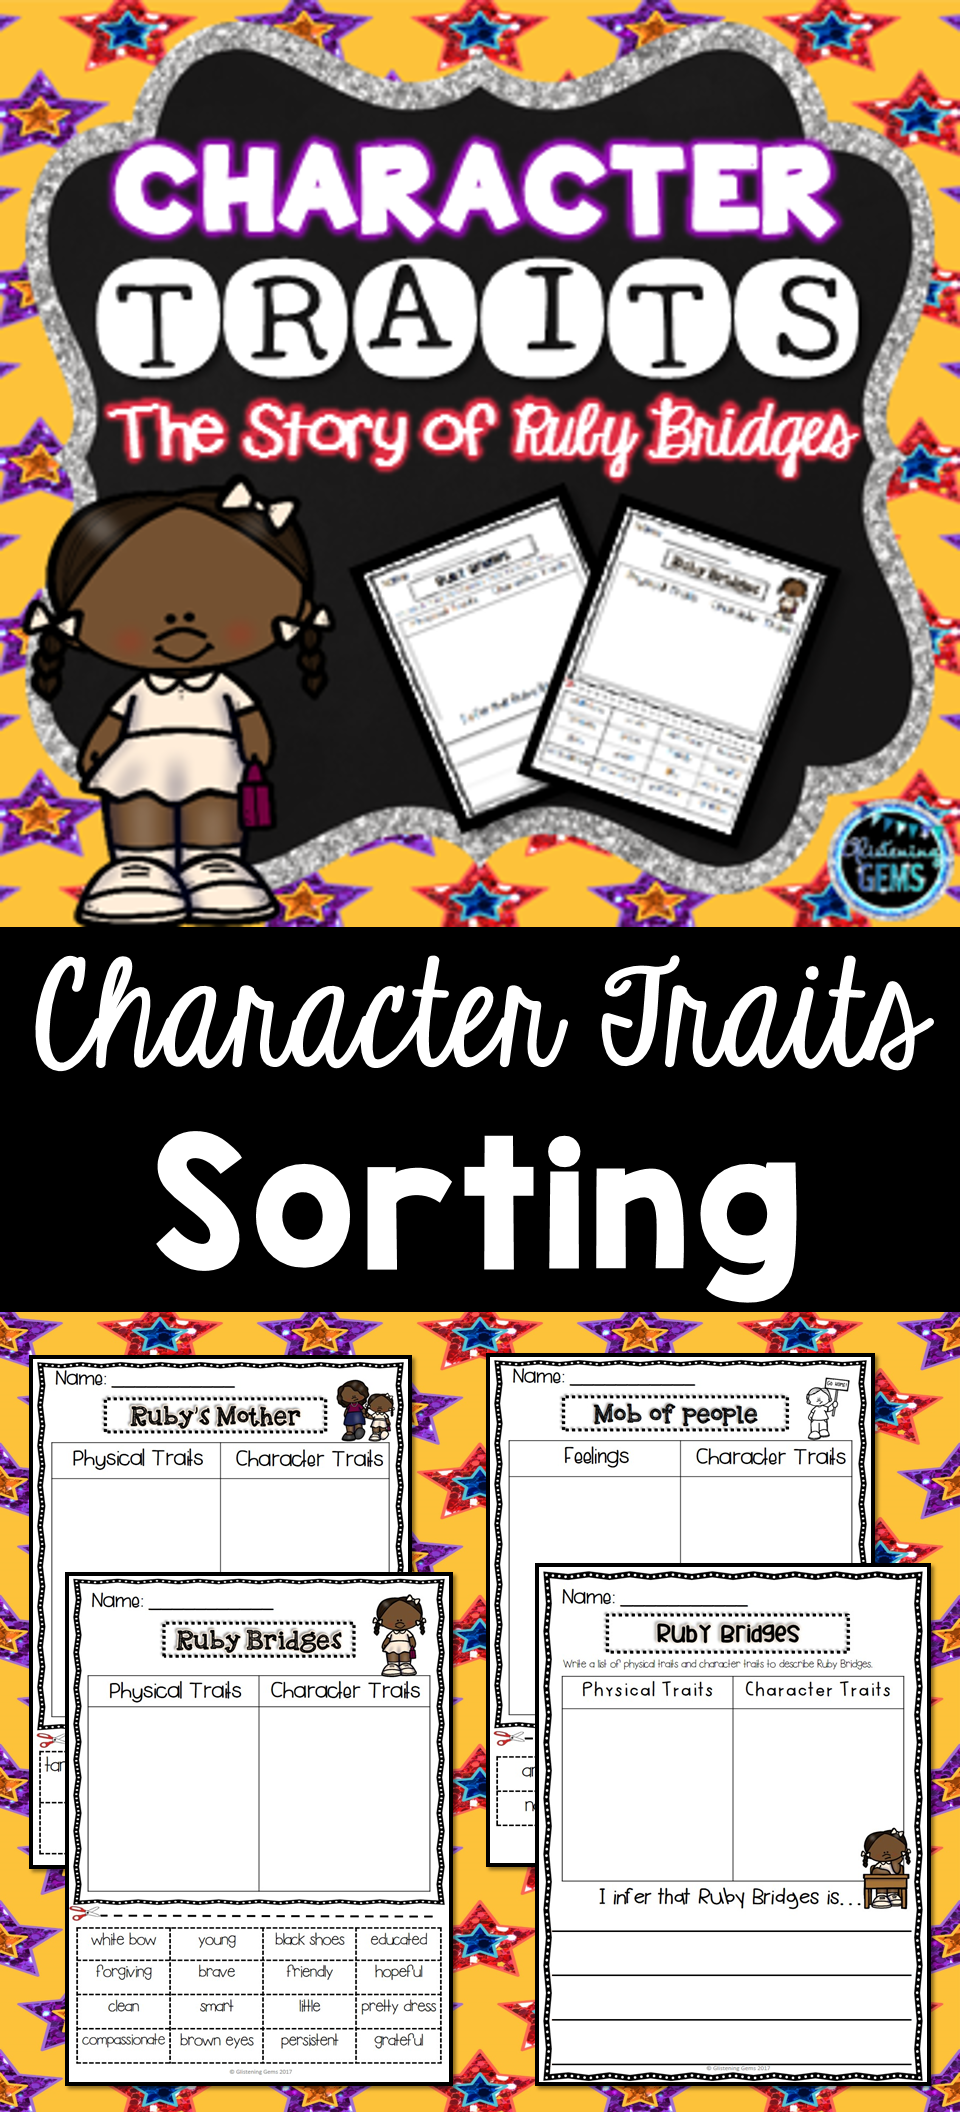 worksheet Ruby Bridges Worksheets For Second Grade the story of ruby bridges character traits sorting trait activities no prep worksheets and answer